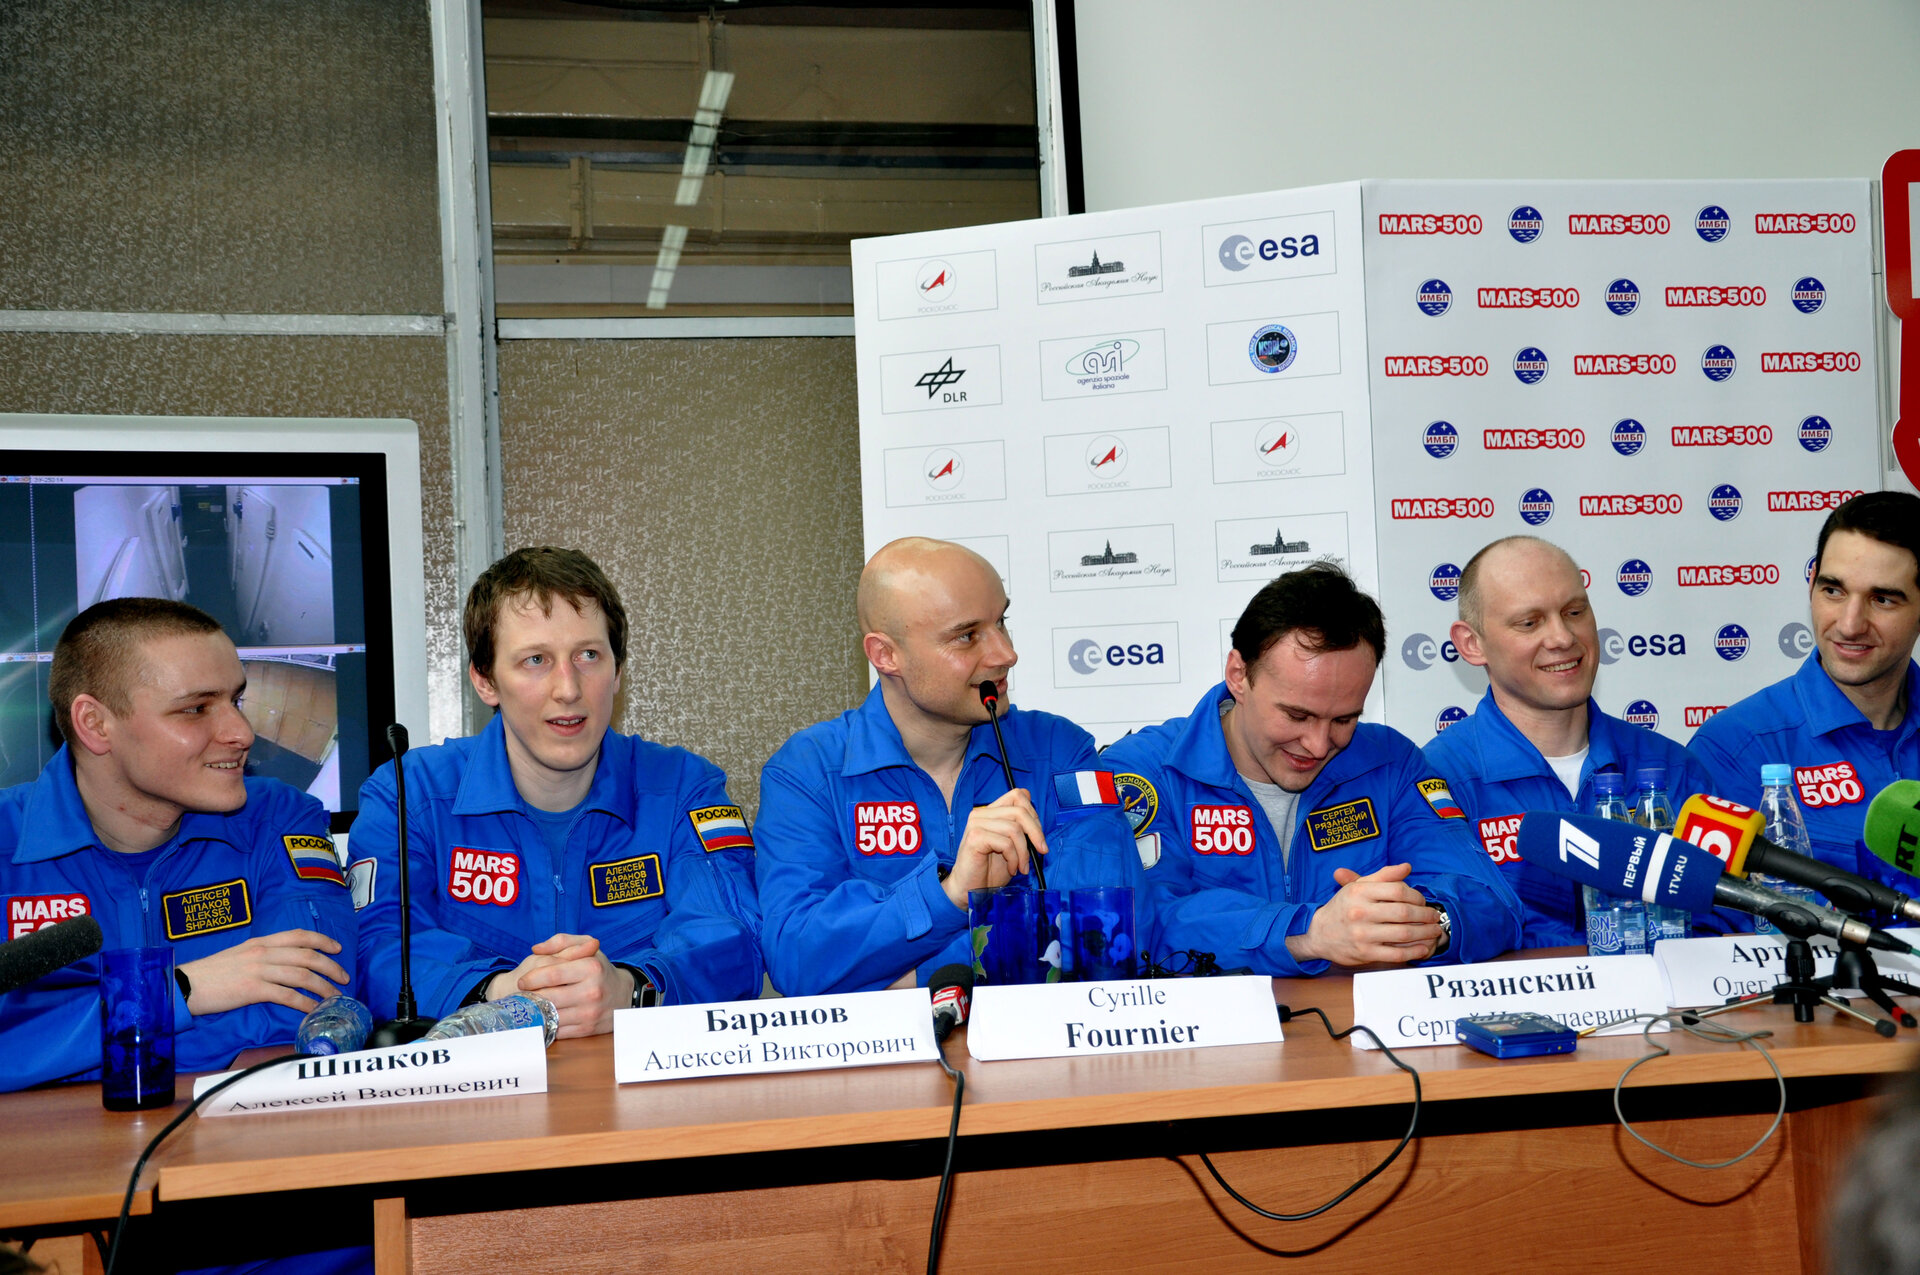 The crew of six has completed their 105-day Mars mission simulation inside the isolation facility in Moscow